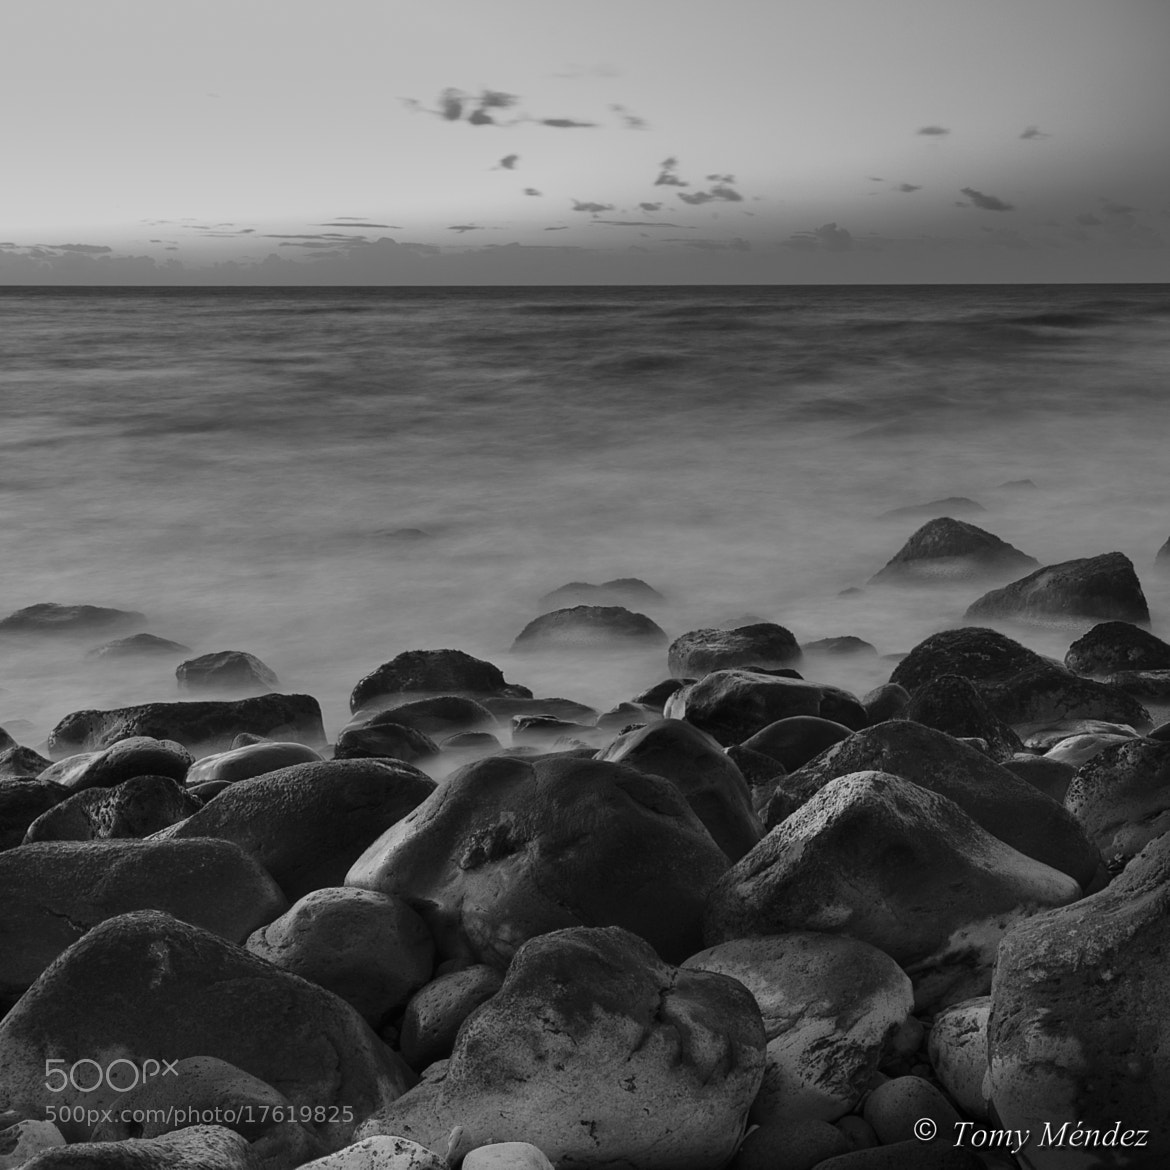 Photograph EL MAR EN BLANCO Y NEGRO 5 by Tomy Méndez on 500px